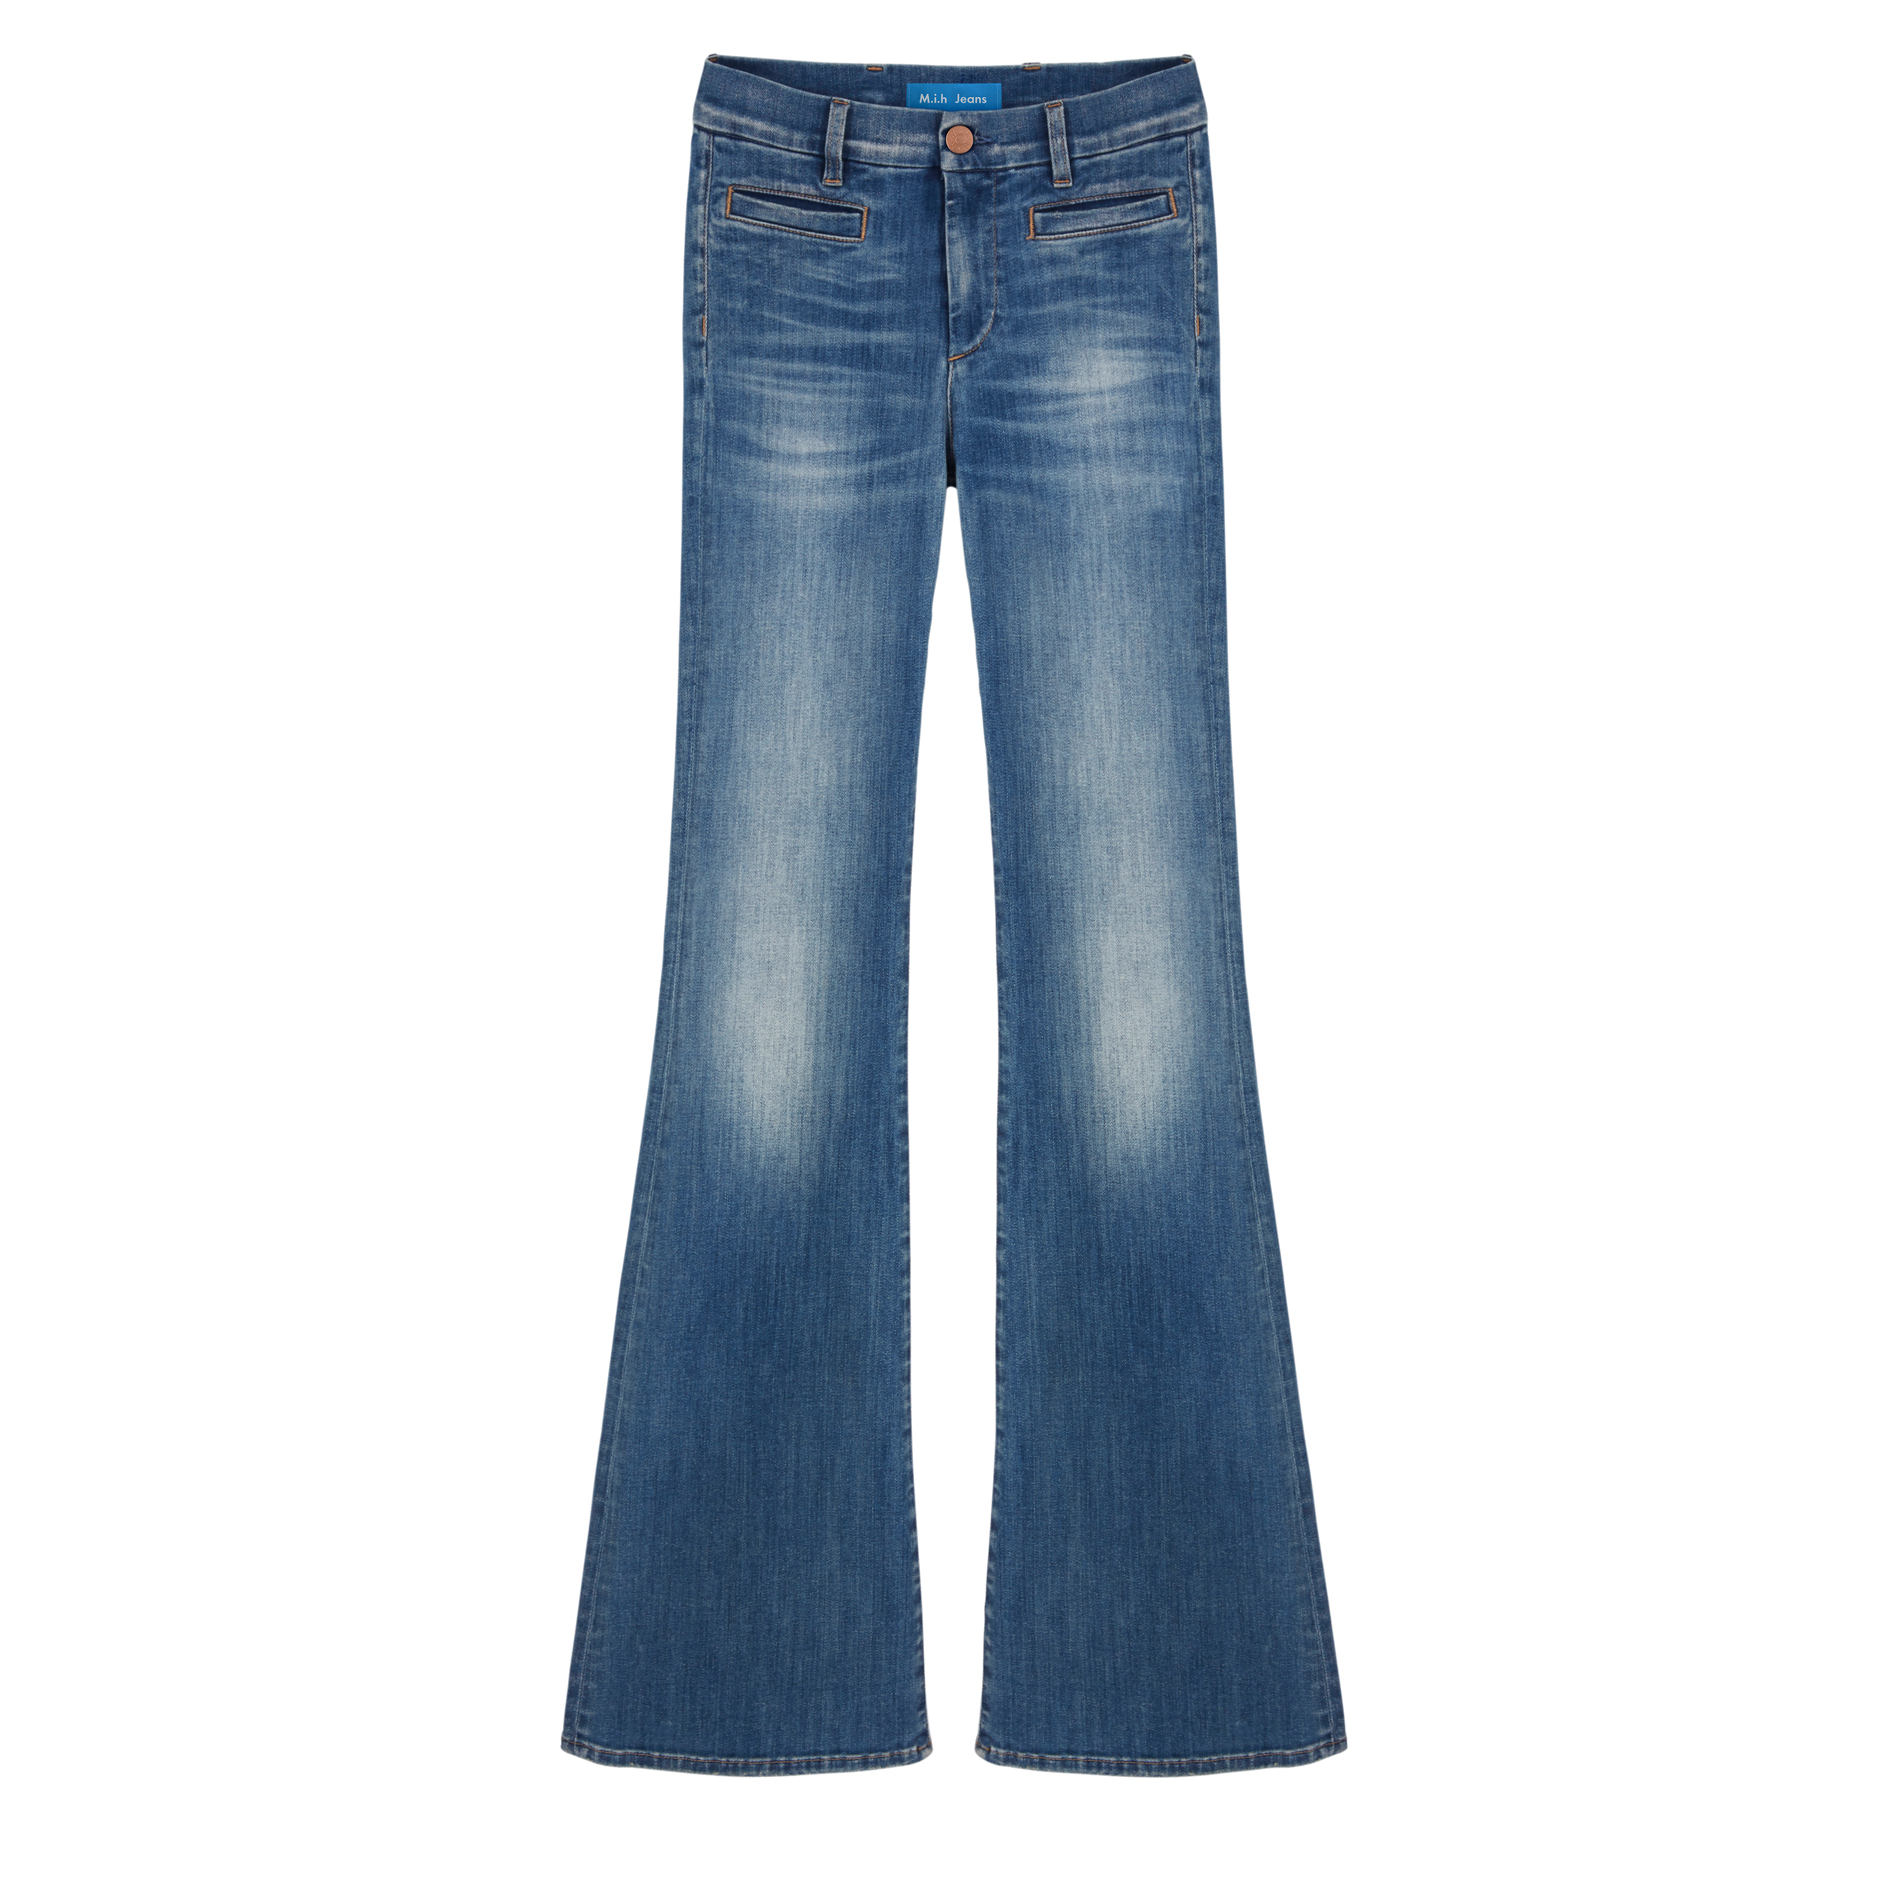 Most-Worn Pair of Jeans